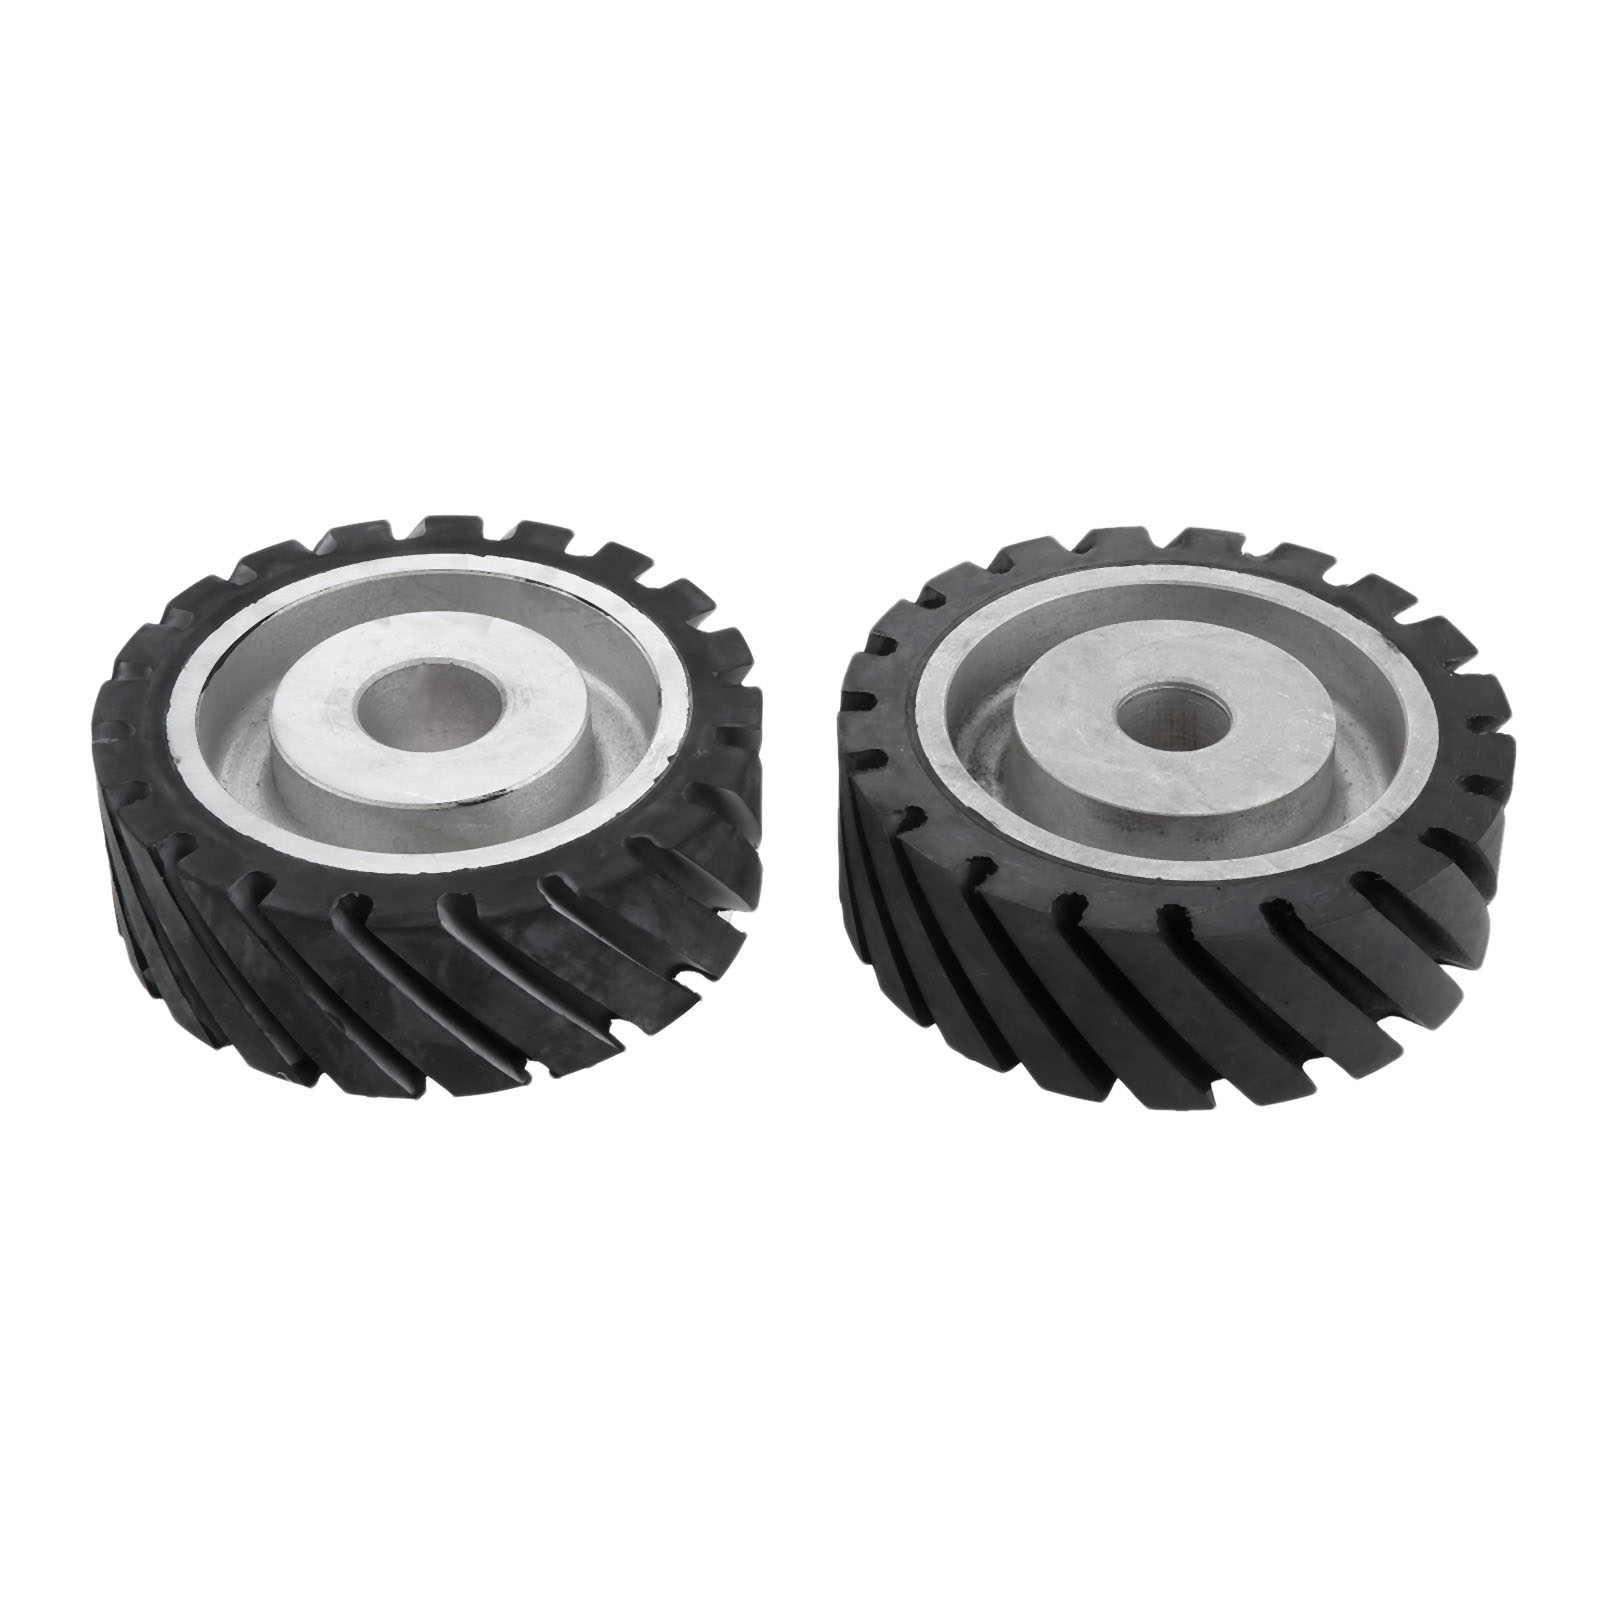 DRELD 150*50mm Serrated Rubber Contact Wheel For Belt Grinder Sander Dynamically Balanced Grinding Sanding Abrasive Belt Set 150 25mm flat rubber contact wheel belt grinder parts sanding belt set